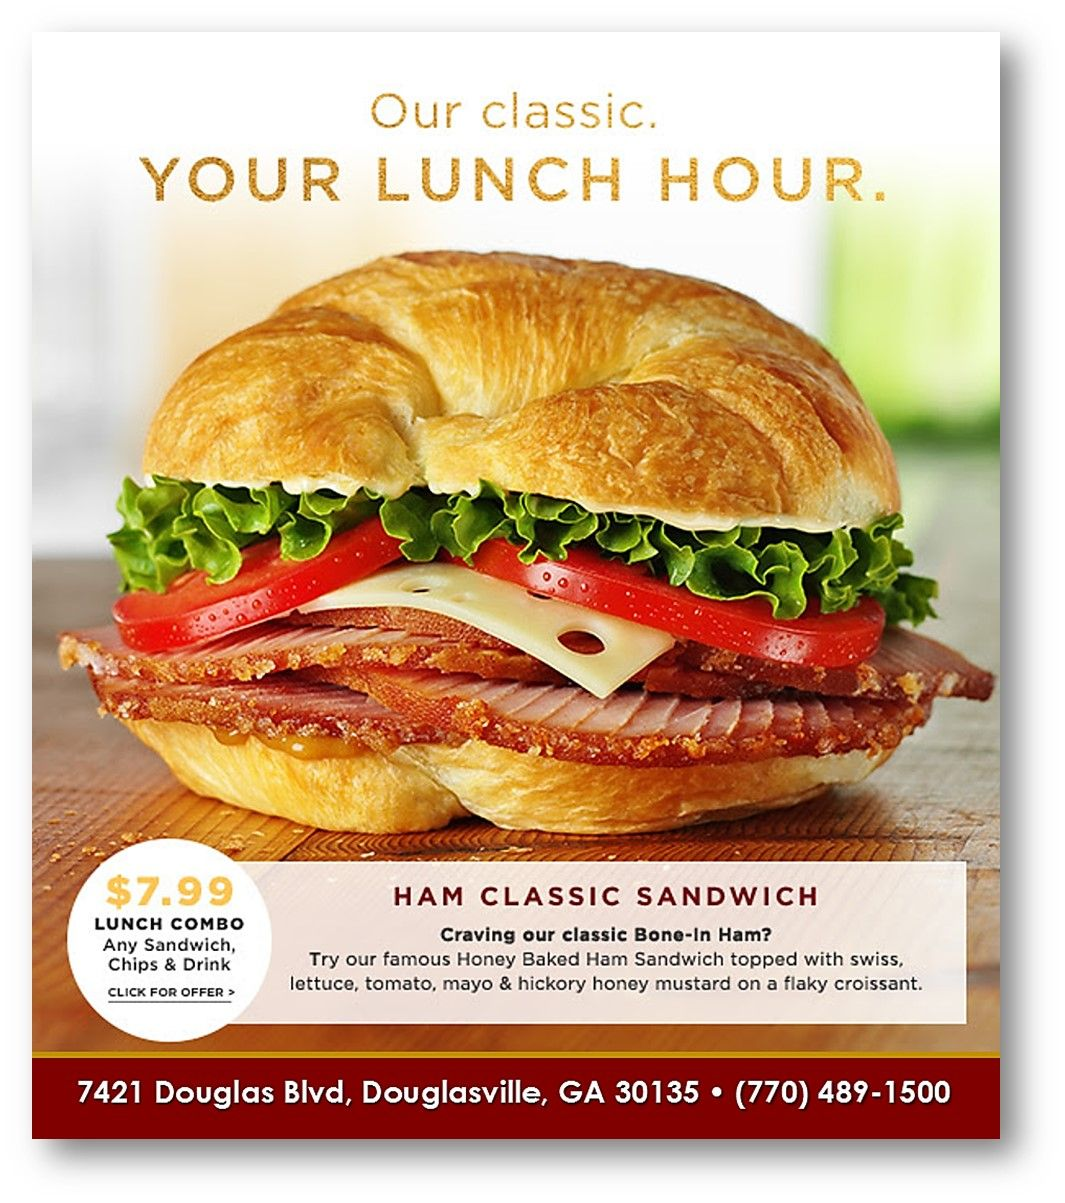 Try Our Famous HoneyBakedHam Classic Sandwich Topped With Swiss Lettuce Tomato Mayo Hickory Honey Mustard On A Flaky Croissant TODAY At HoneyBaked Ham